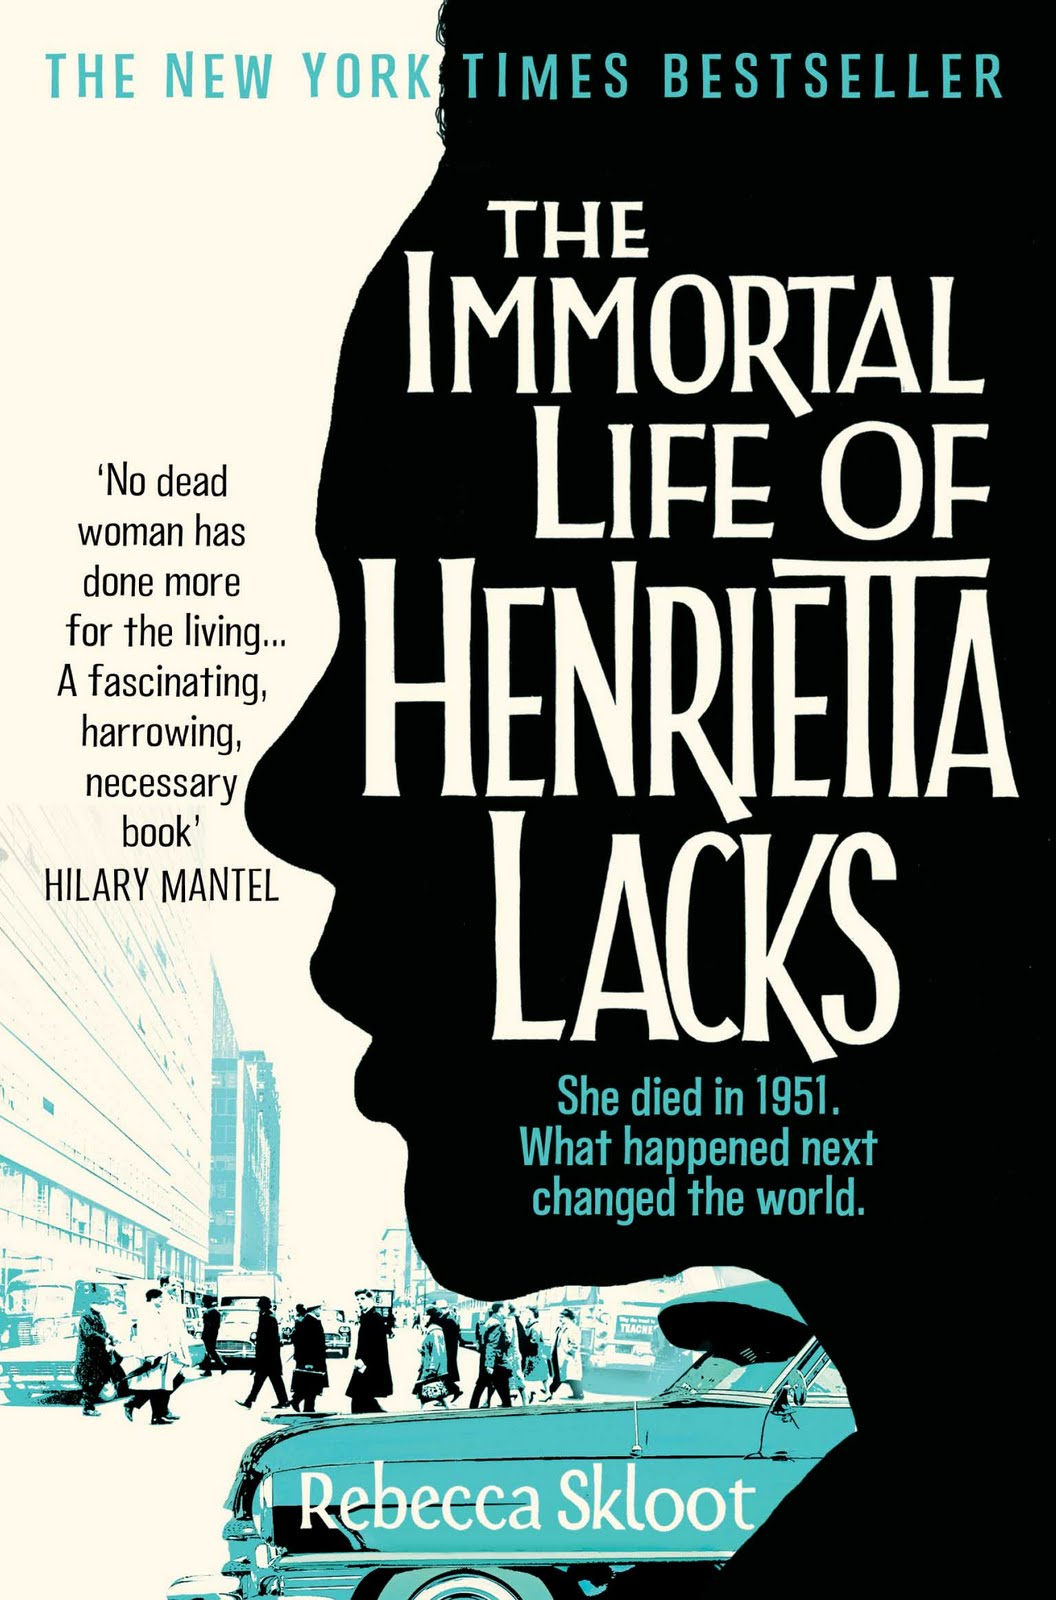 life of henrietta lacks summary